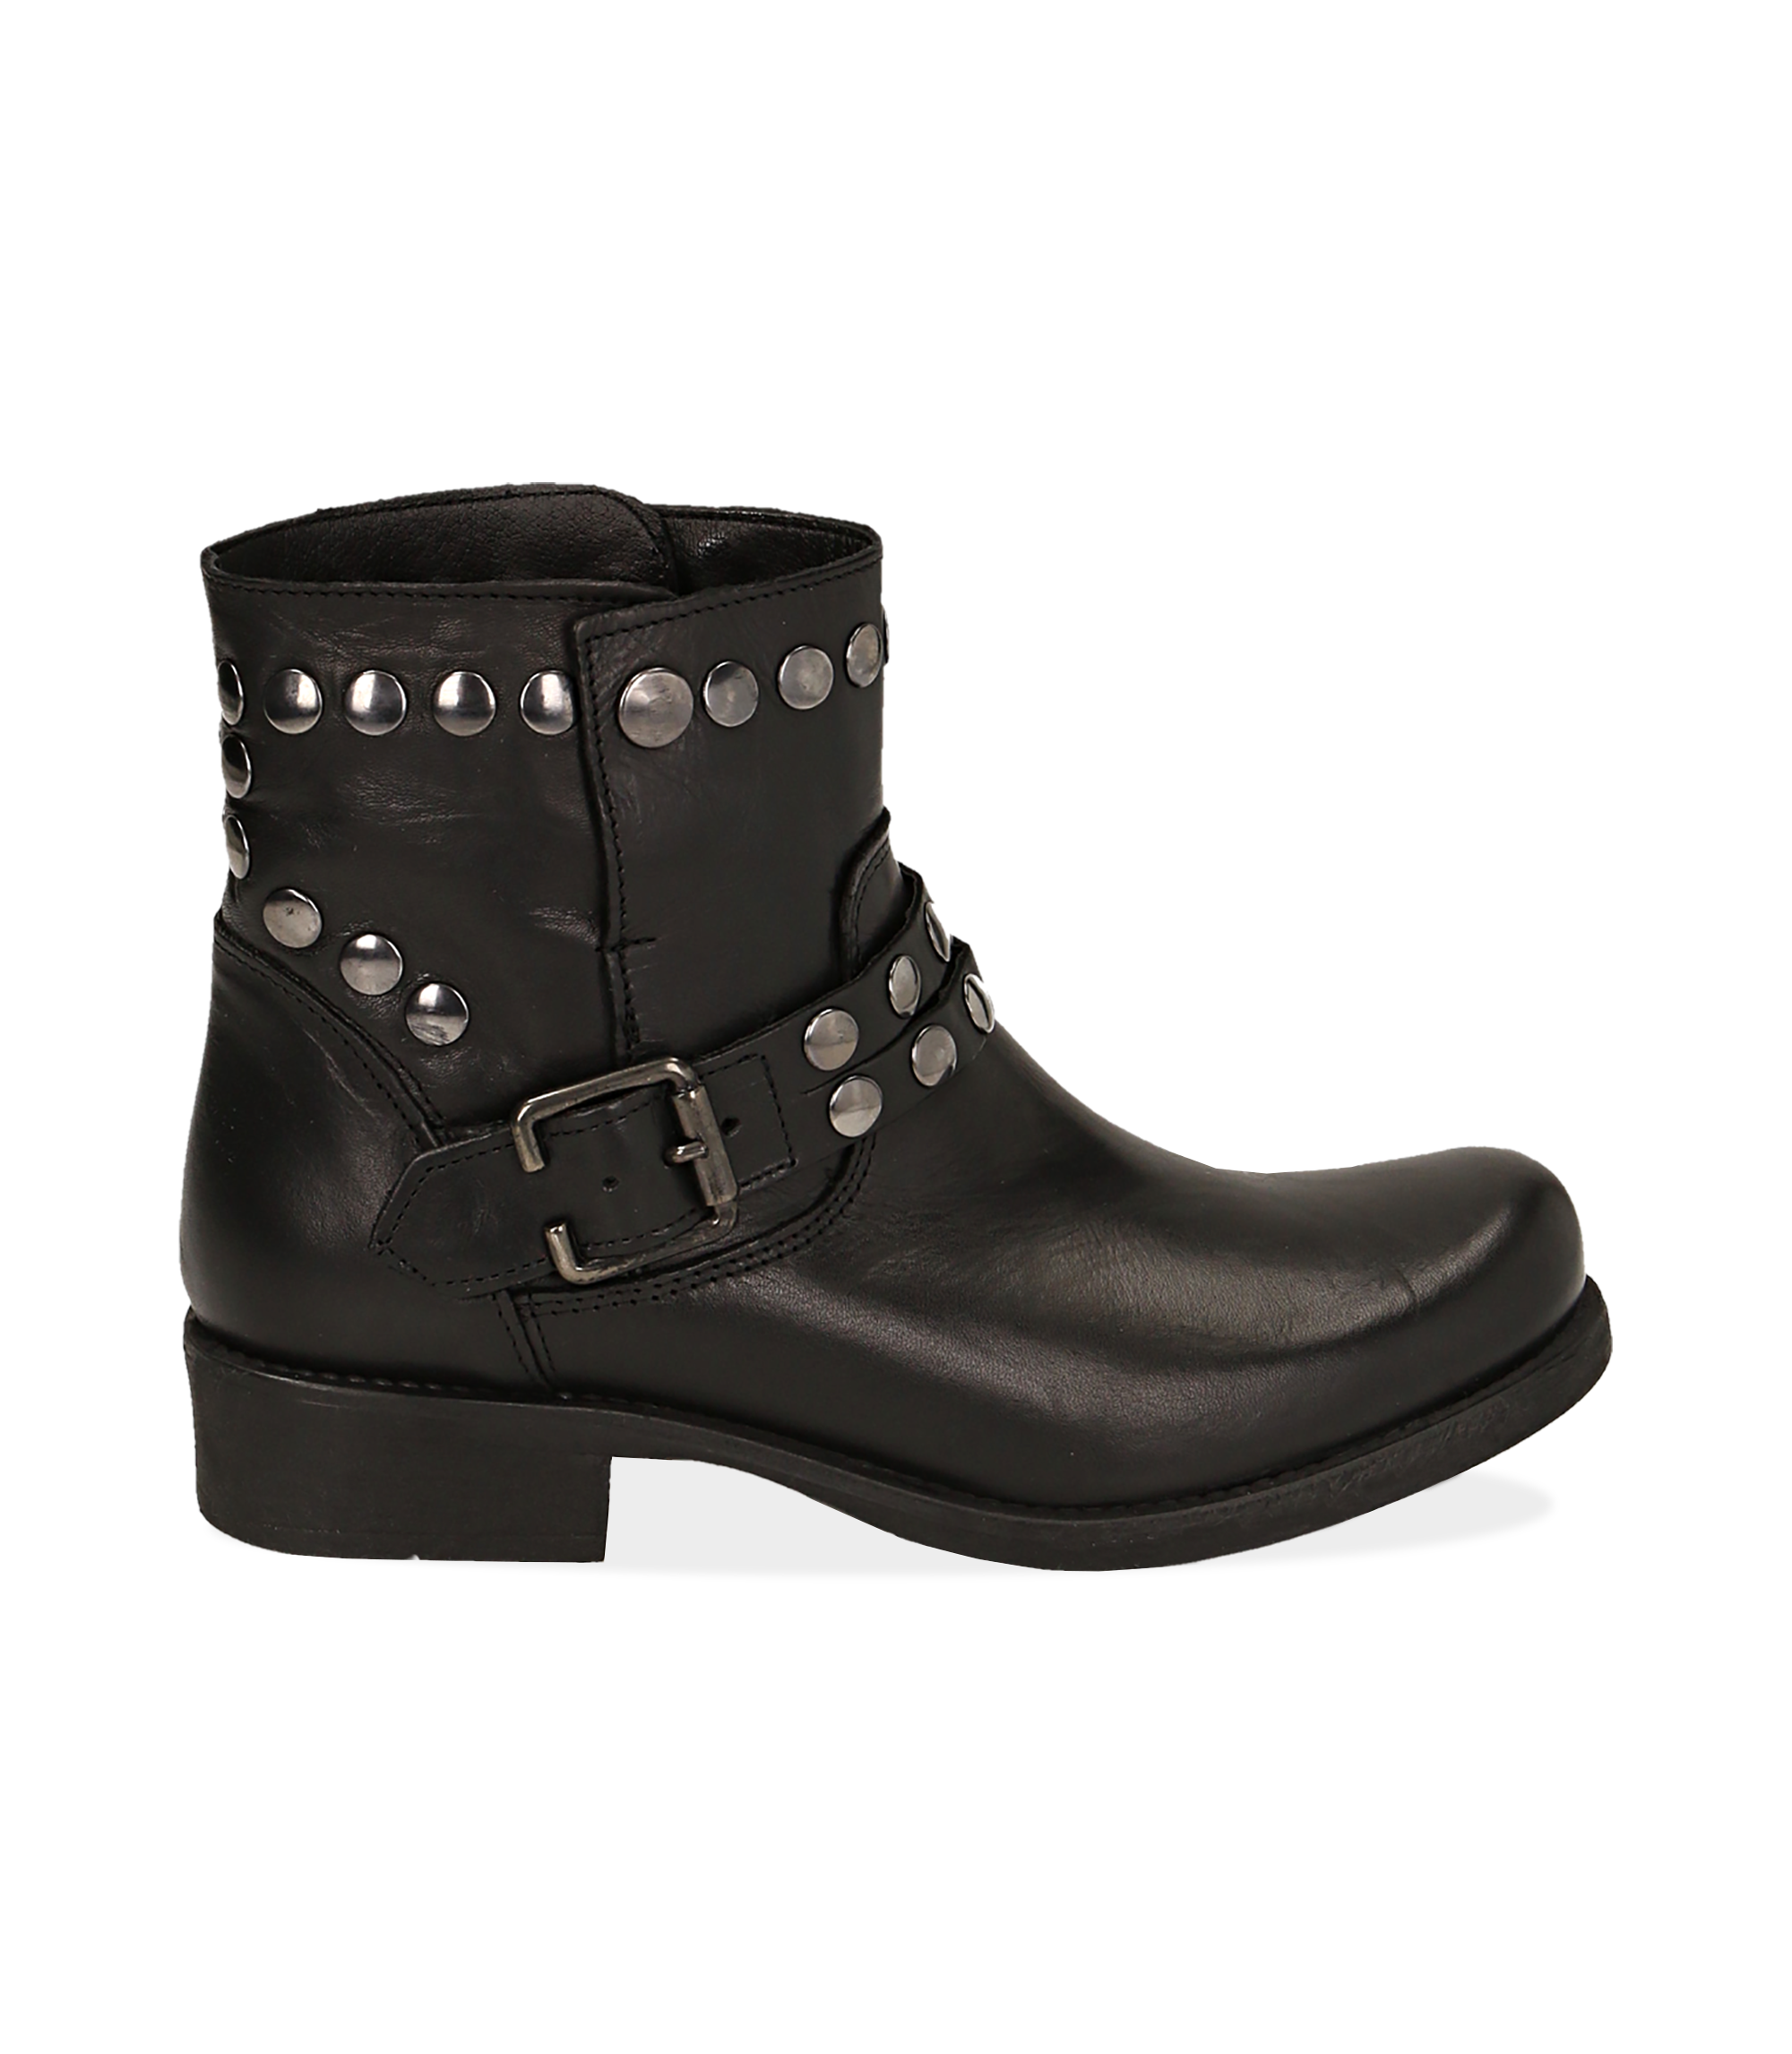 Biker boots borchiati neri in pelle di vitello